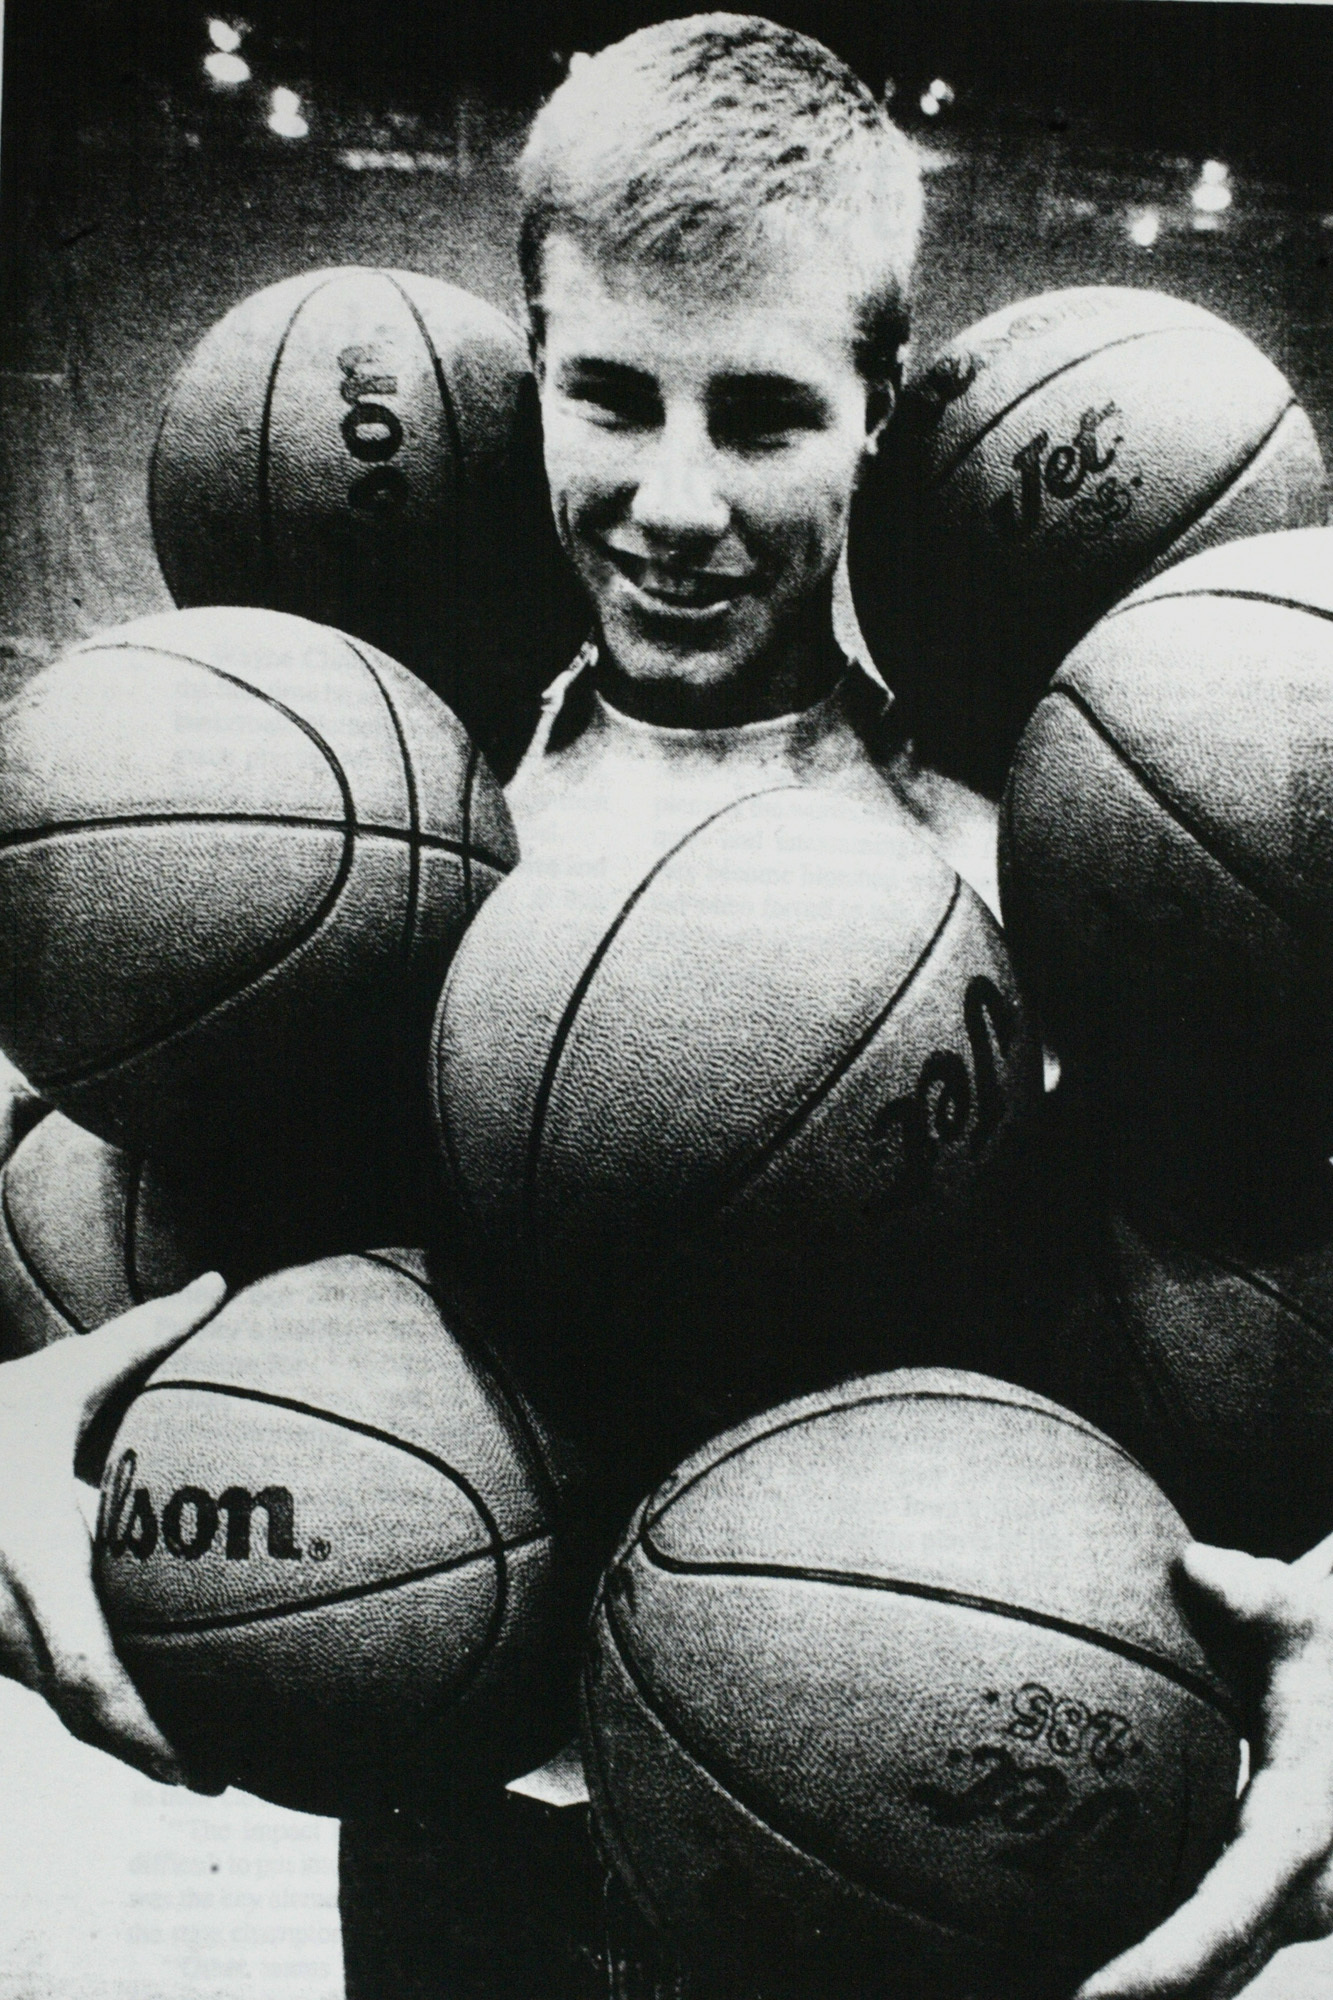 """Marlin Levison - STRIB 05/23/04 - Ames IA -Fred Hoiberg was named """"Mr. Basketball"""" by the Iowa Newspaper Association after winning the state championship for Ames Highschool in 1991. Photo by Mark Davitt of the Ames Daily Tribune."""